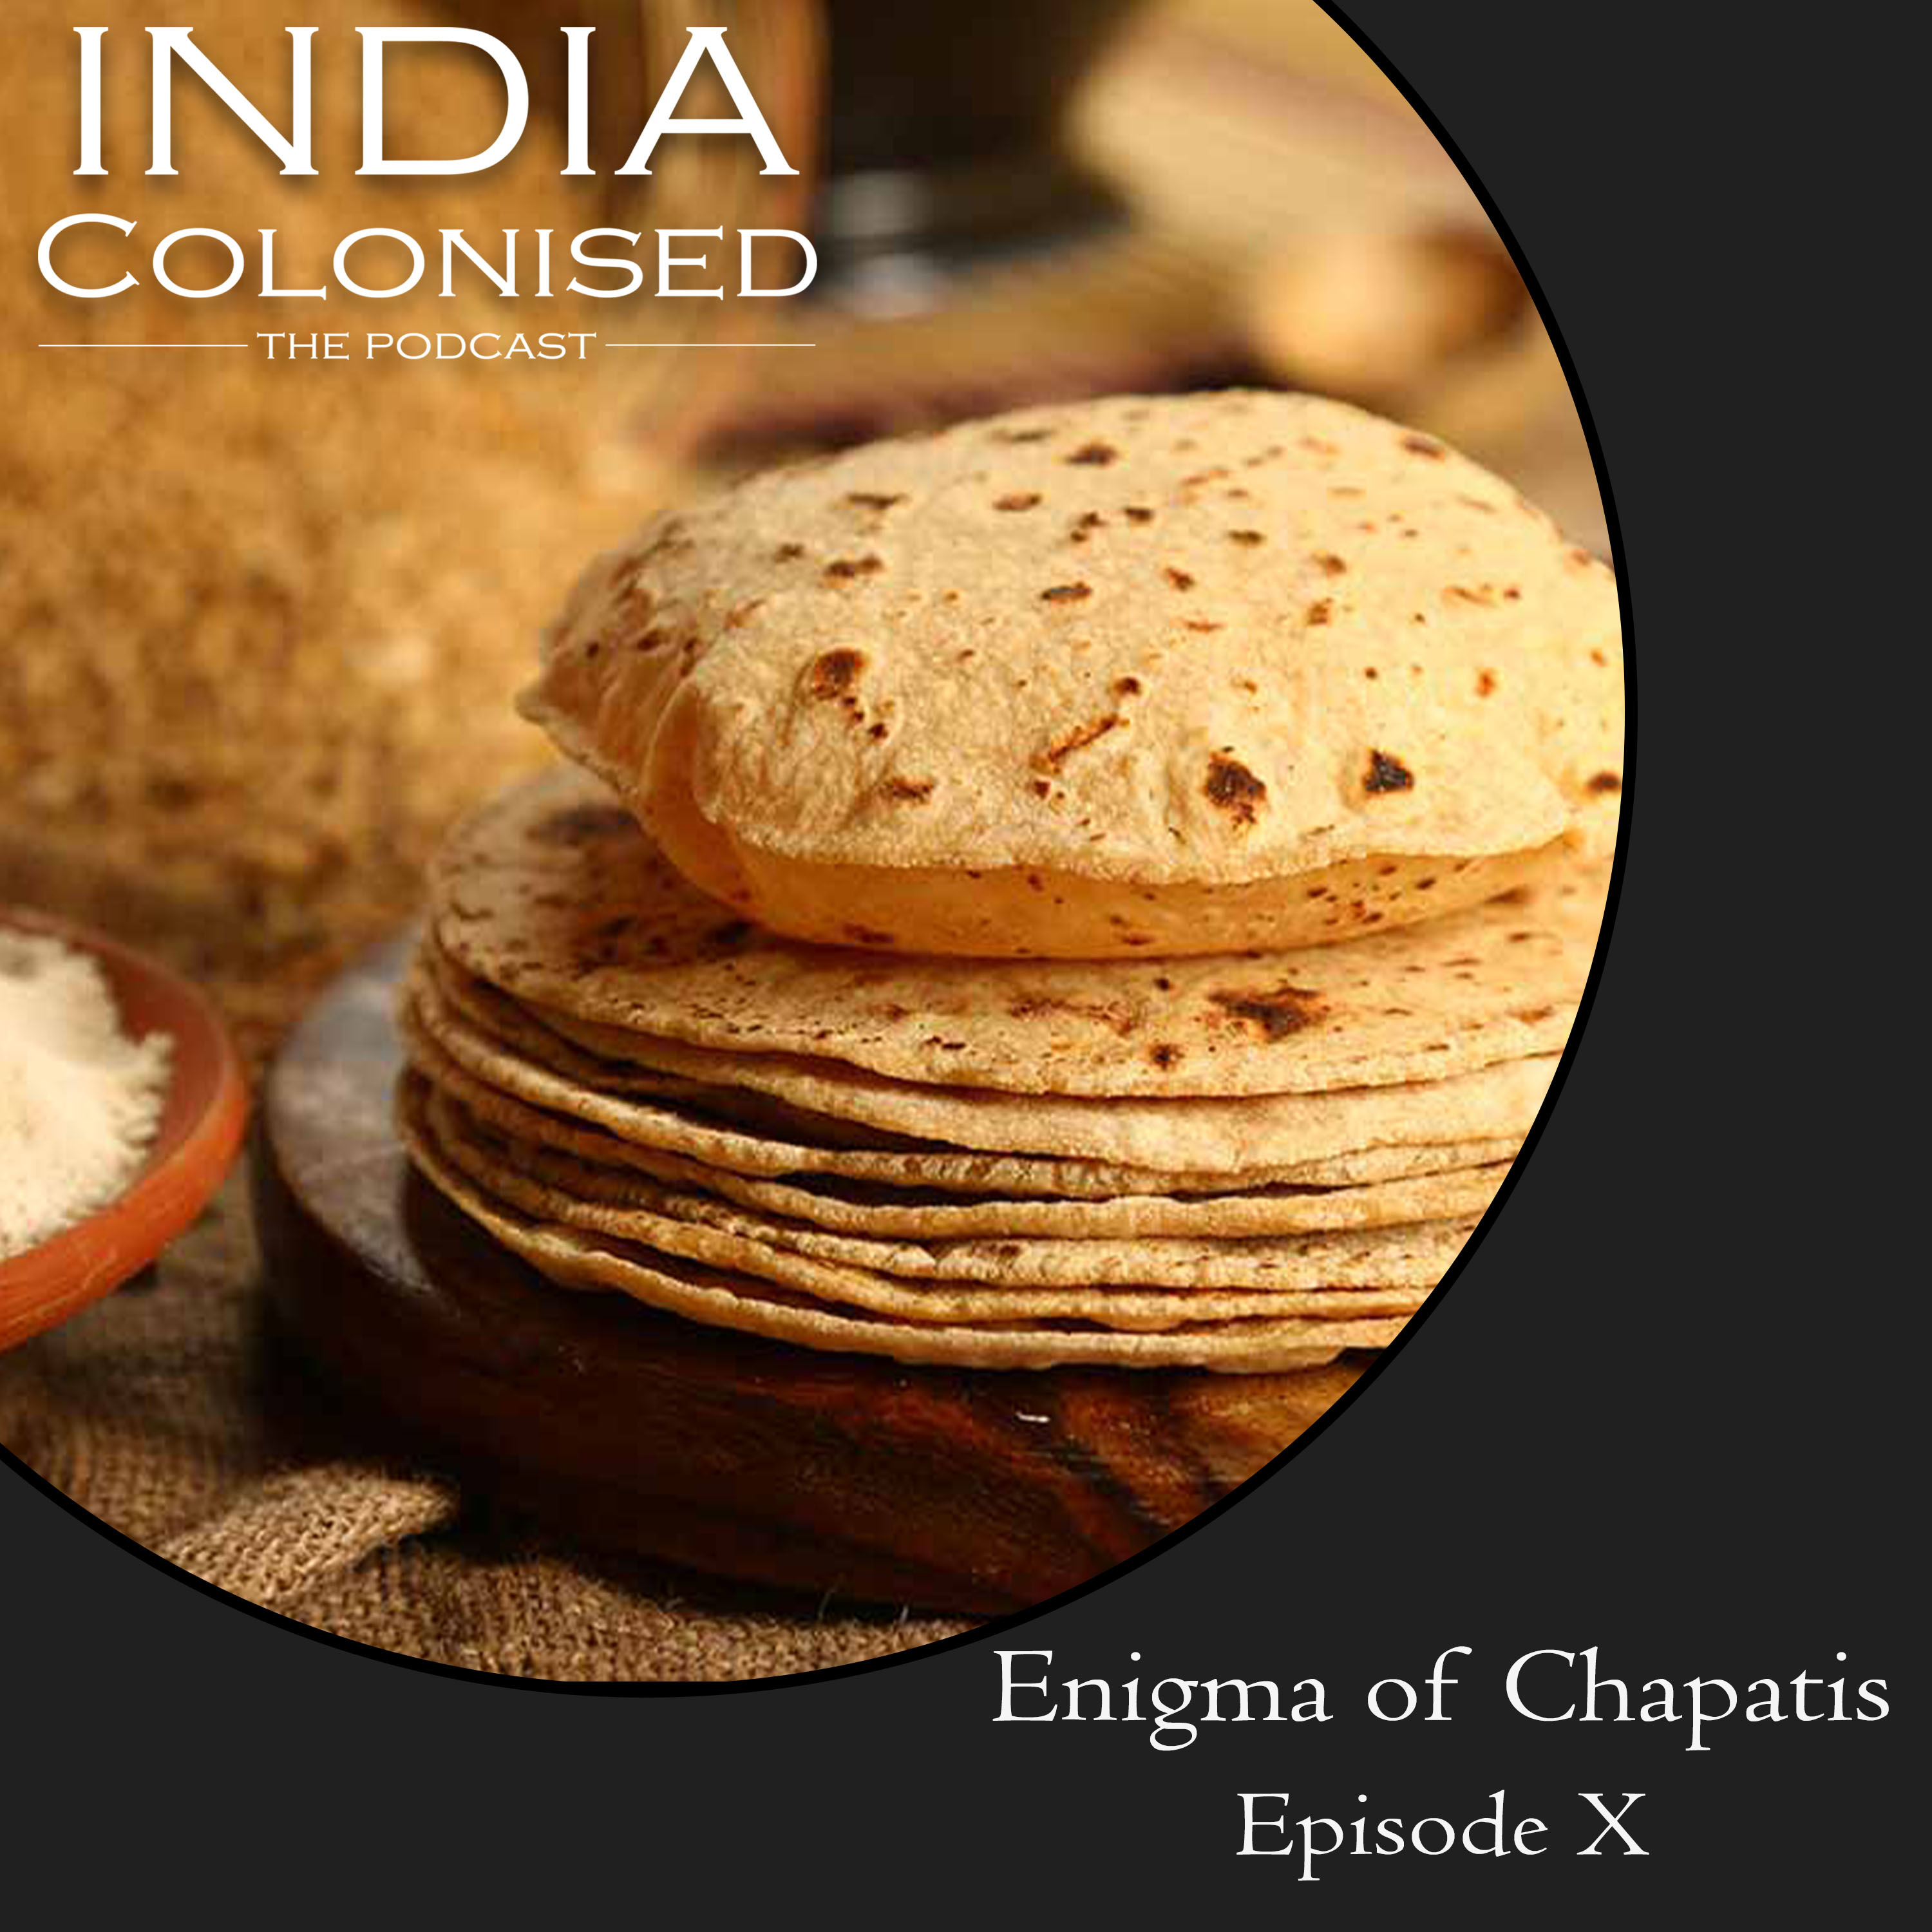 Episode 10: Enigma of Chapatis